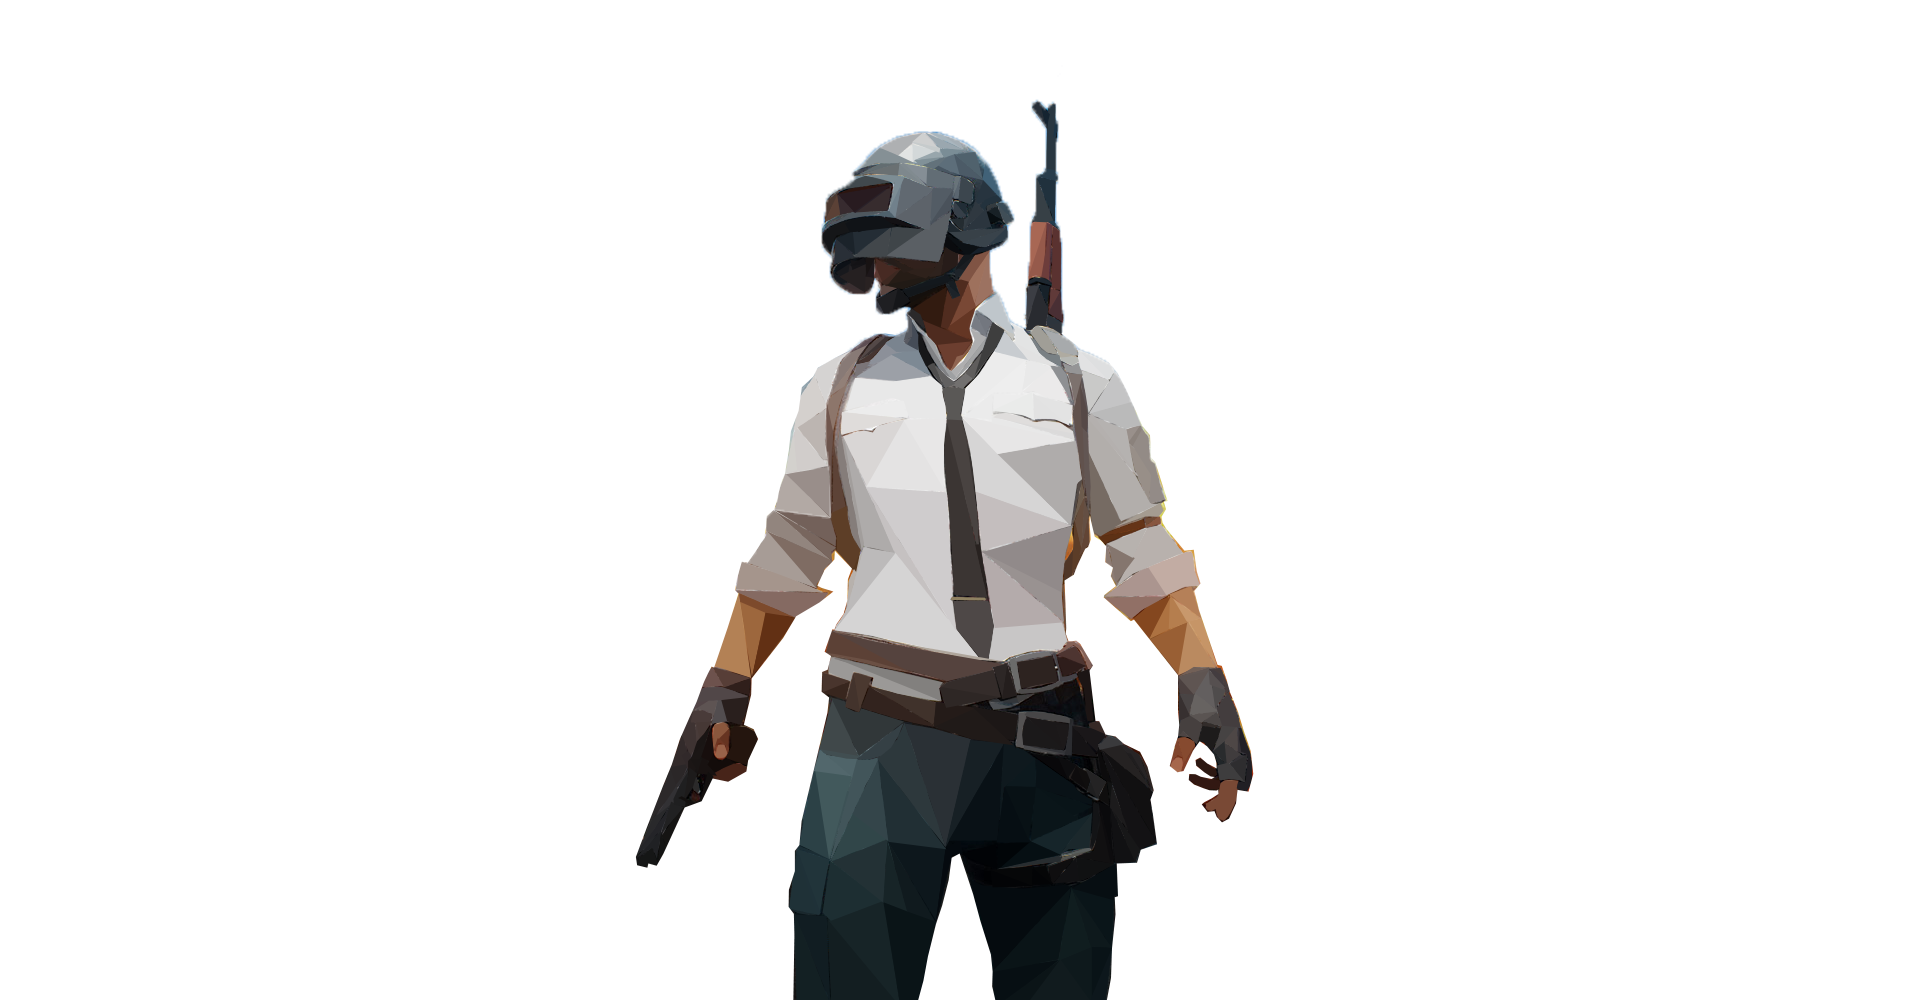 Pubg png. Playerunknown s battlegrounds images